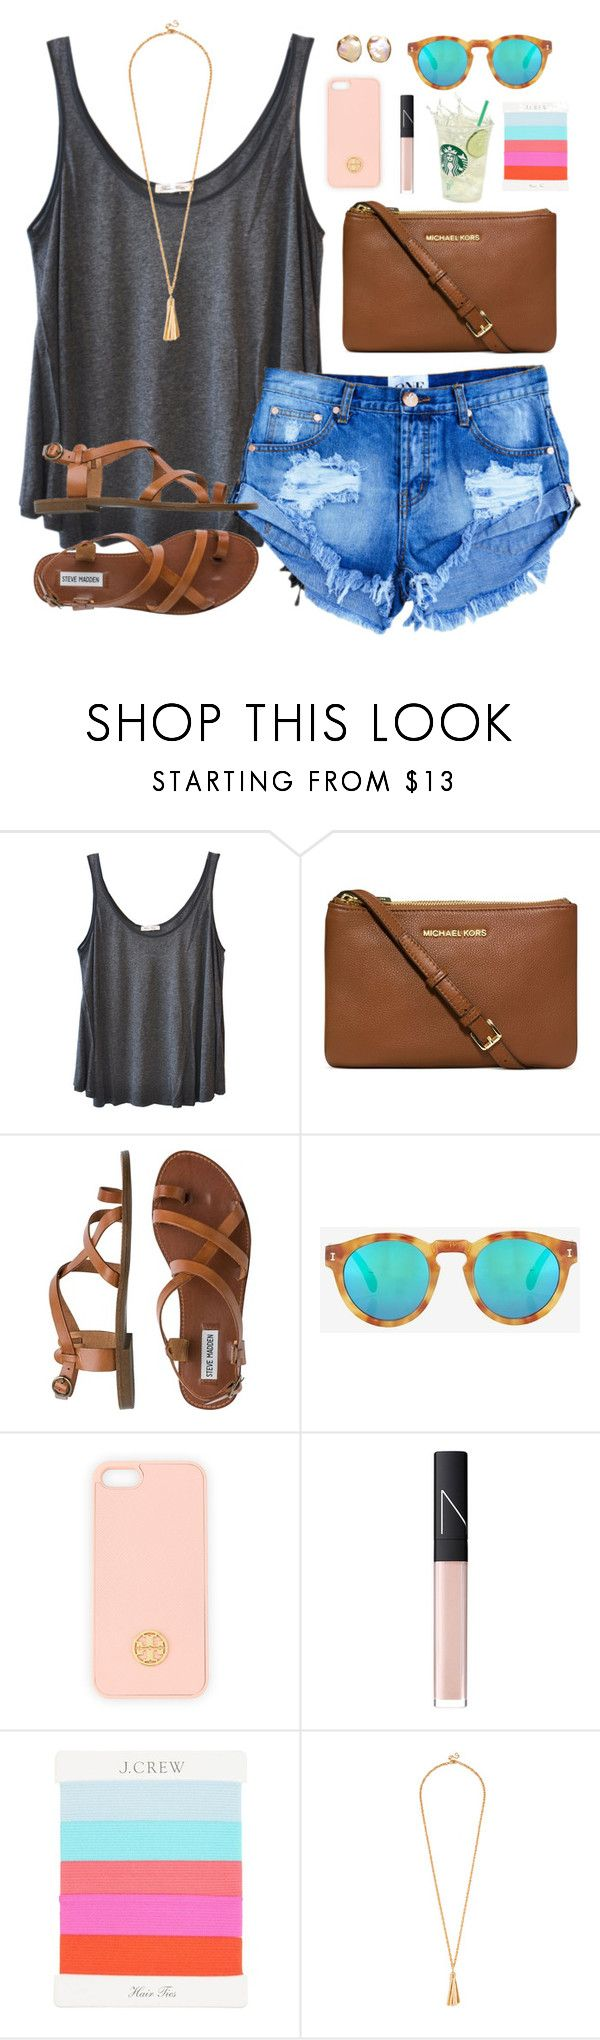 """""""20k tyyyyy <3<3"""" by classically-preppy ❤ liked on Polyvore featuring American Vintage, Michael Kors, Steve Madden, Illesteva, Tory Burch, NARS Cosmetics and J.Crew"""